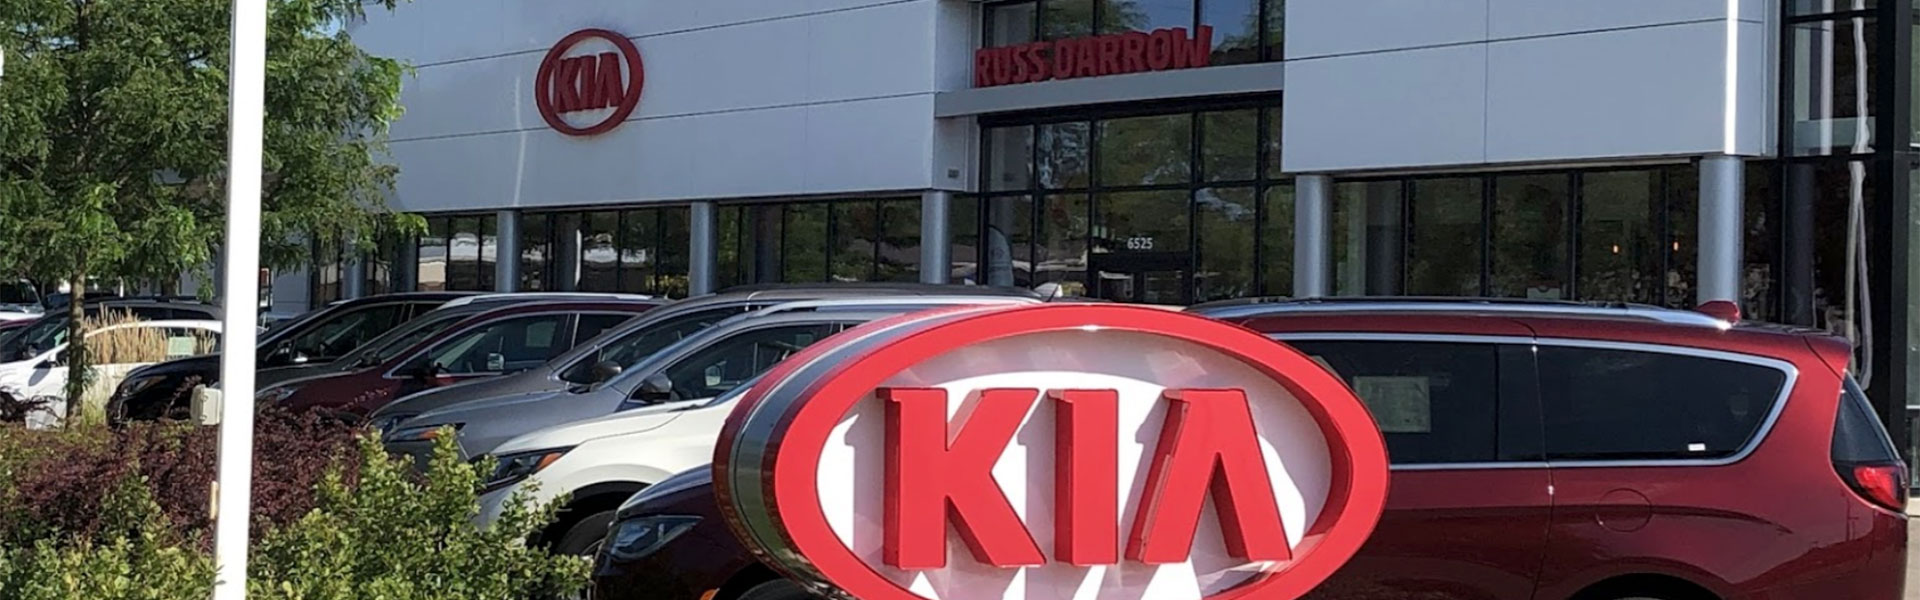 Russ Darrow Kia of Madison Service Department